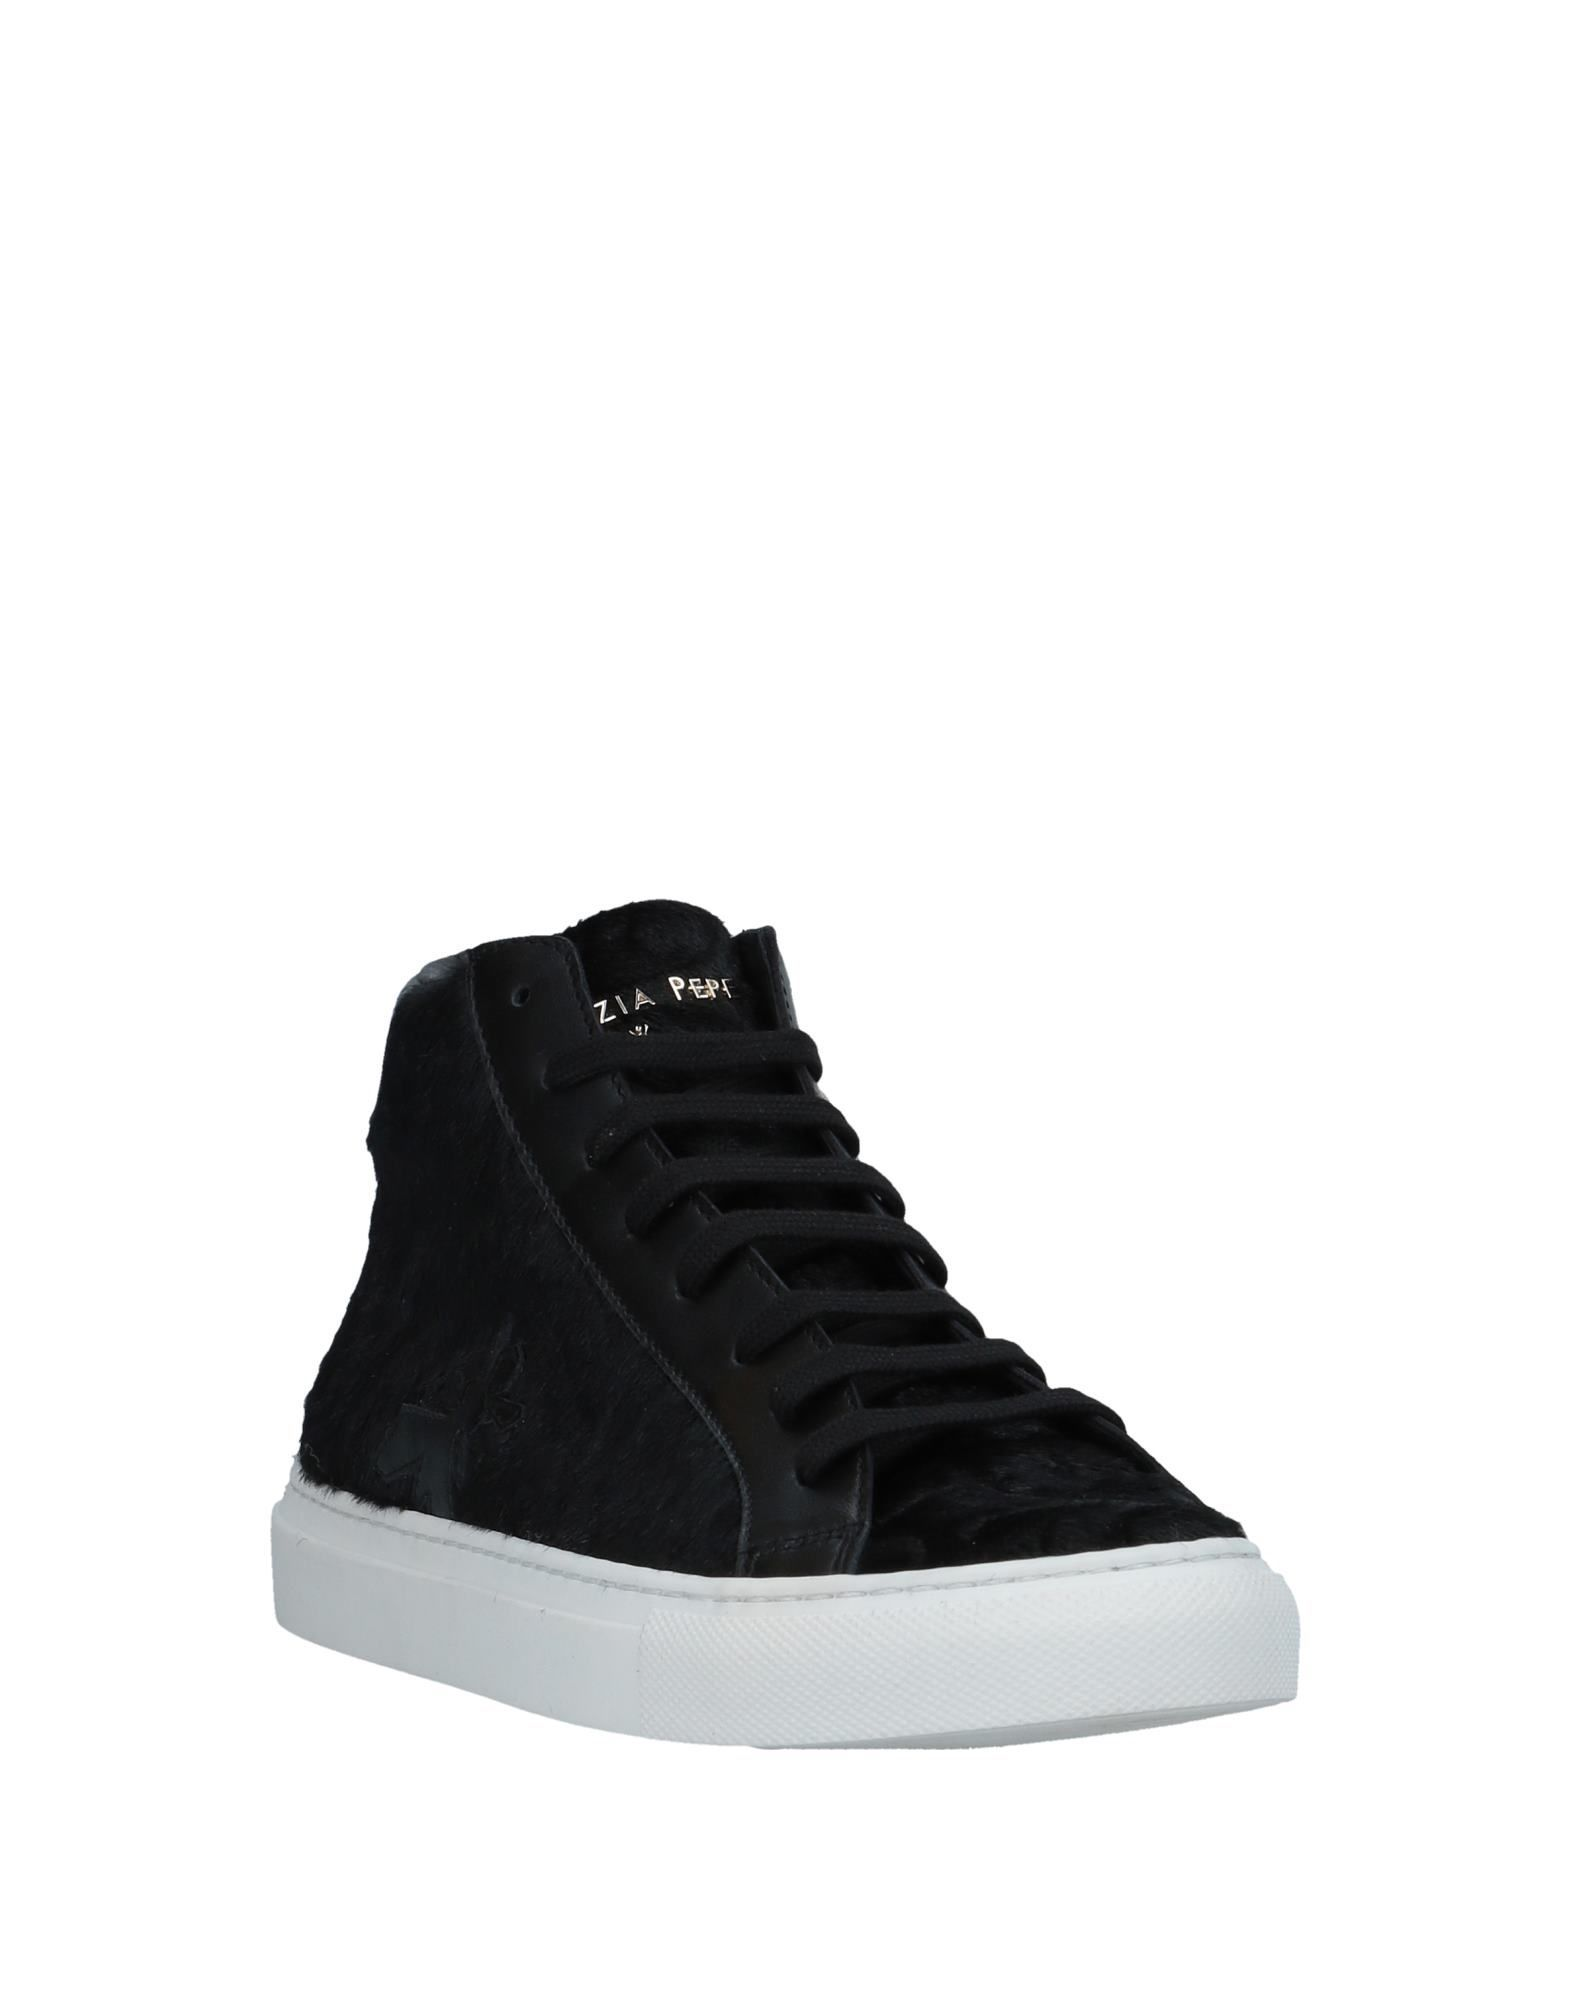 Patrizia Pepe Black Leather Sneakers